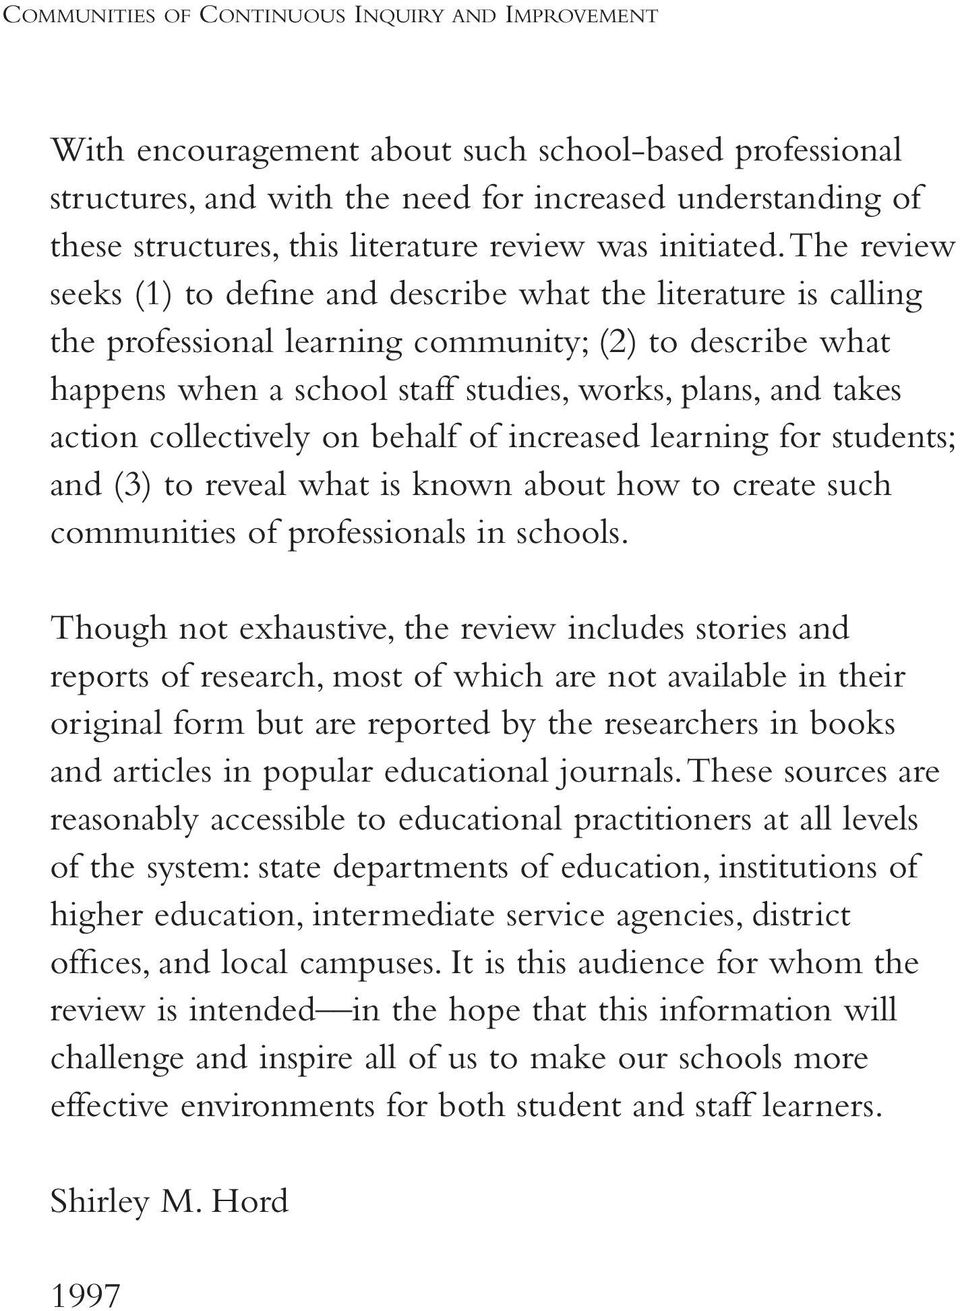 the review seeks (1) to define and describe what the literature is calling the professional learning community; (2) to describe what happens when a school staff studies, works, plans, and takes